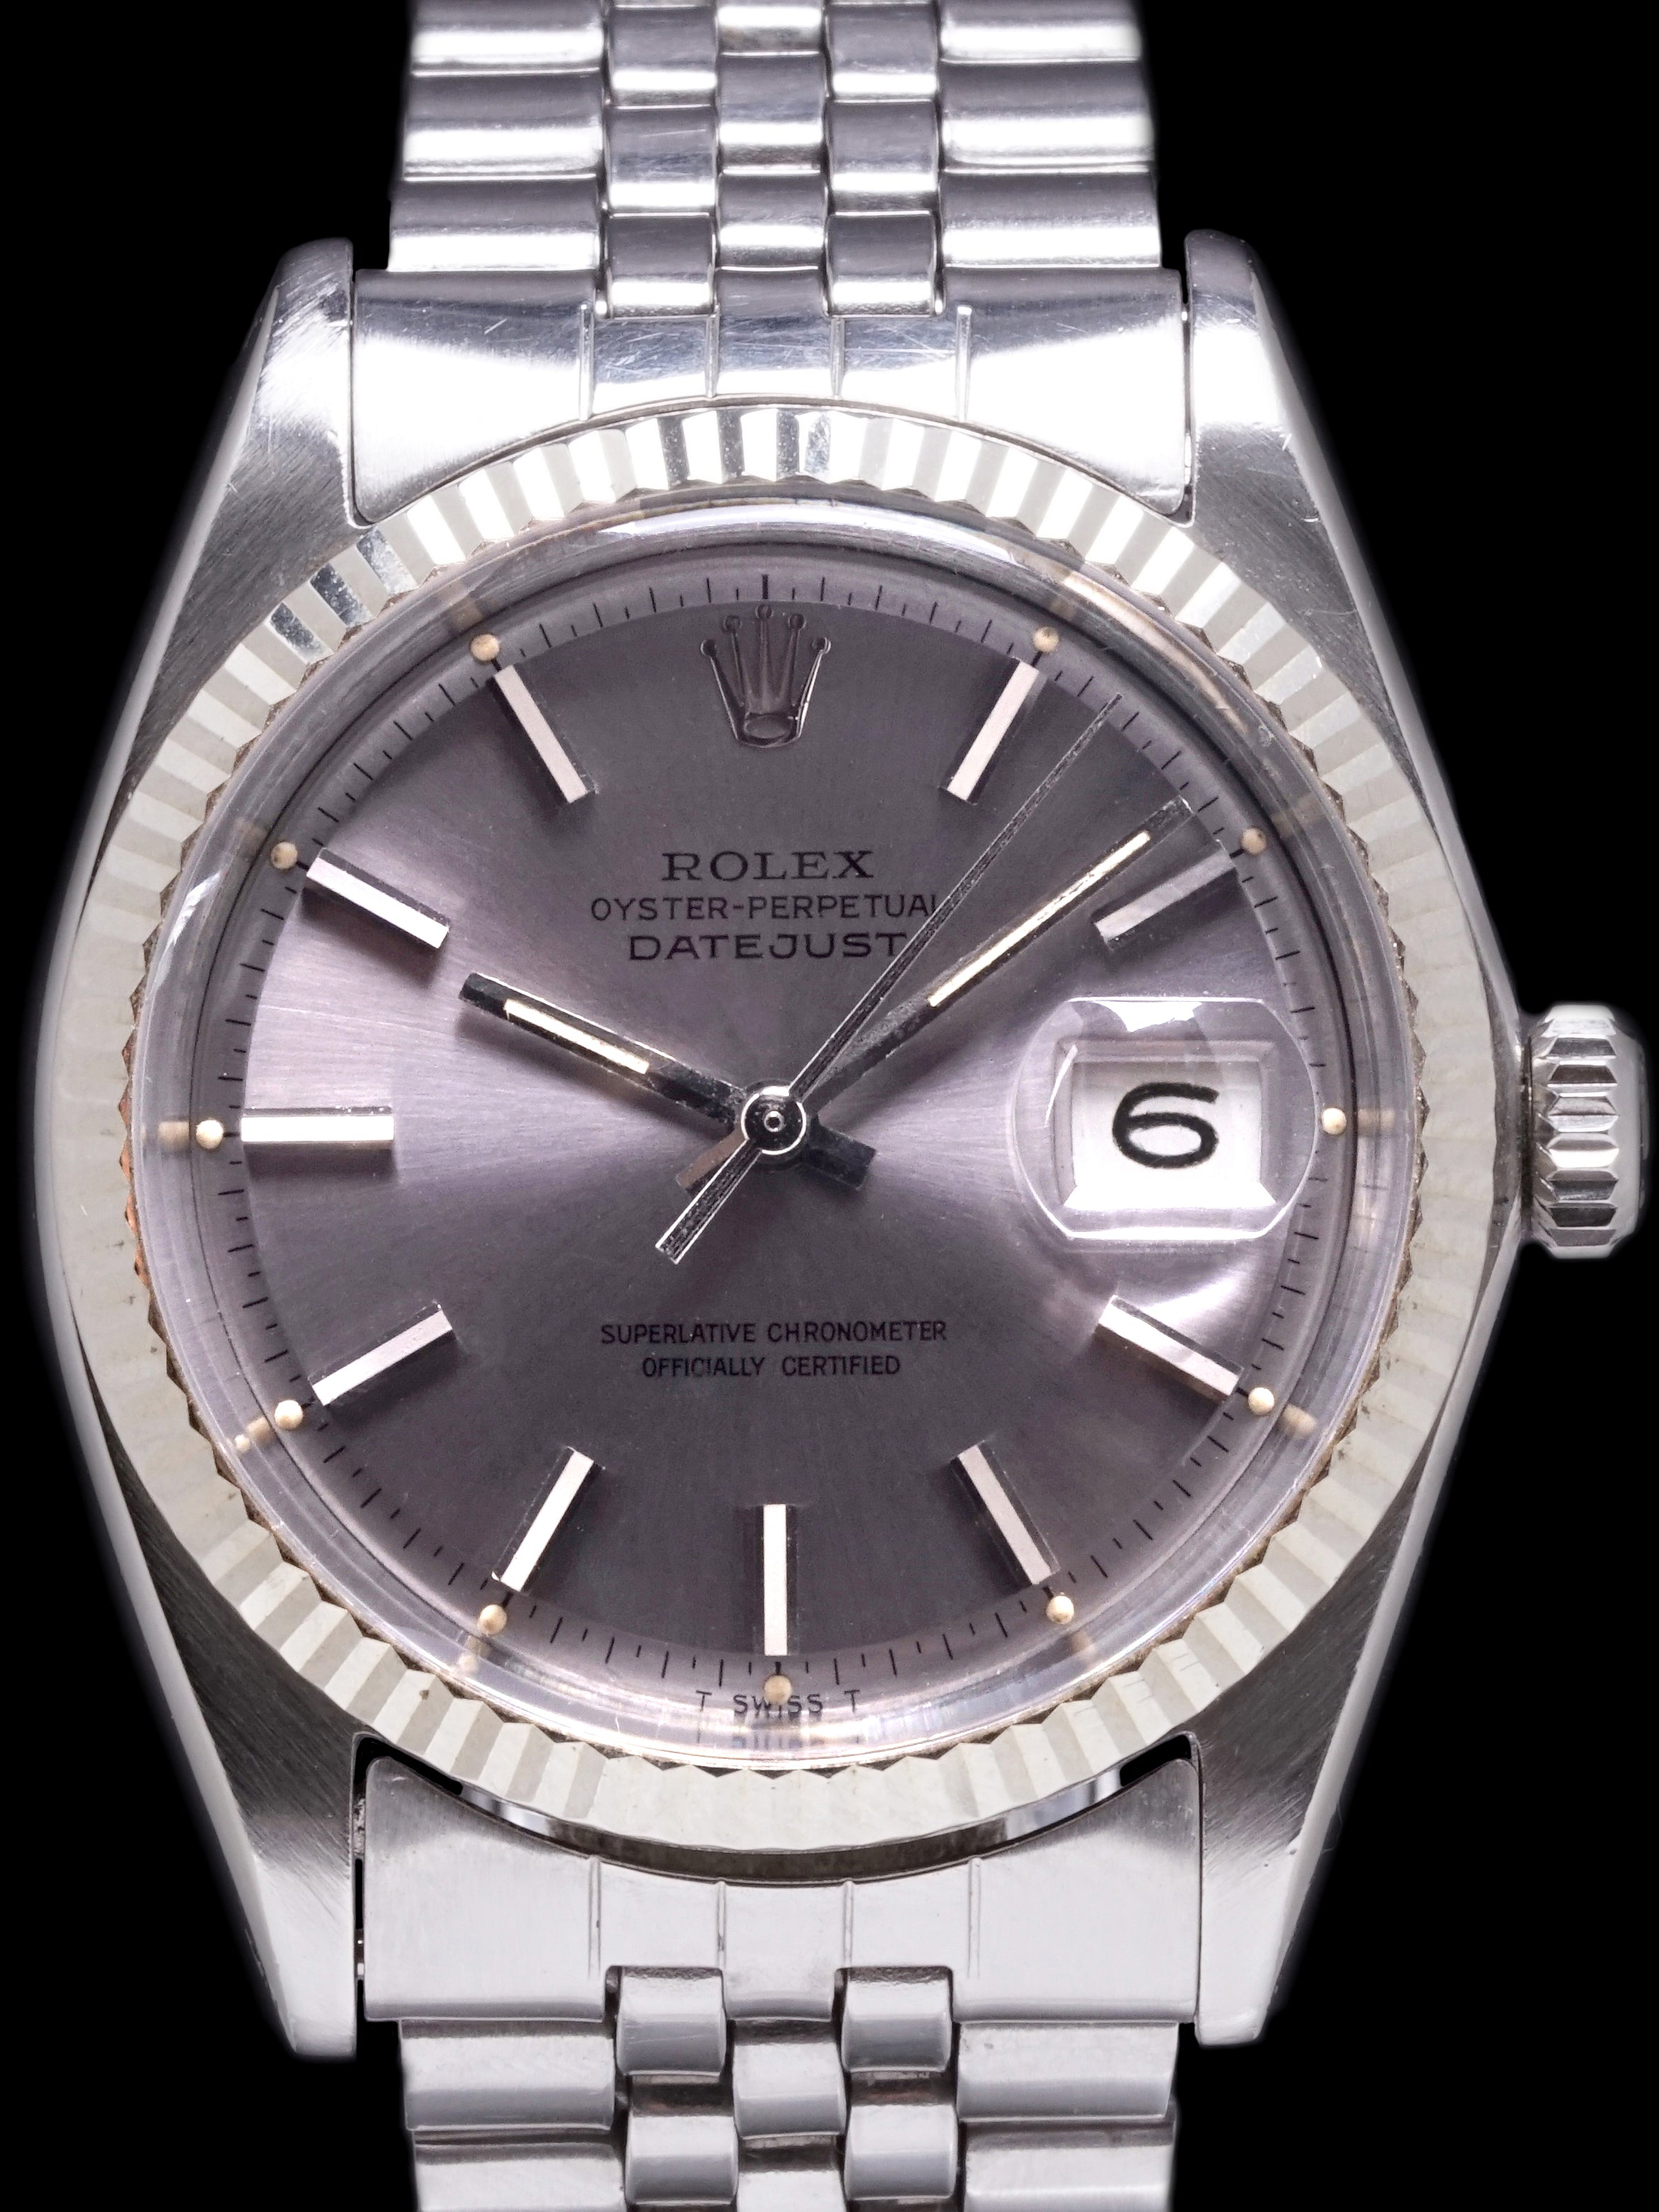 1968 Rolex Datejust (Ref. 1601) Grey Dial